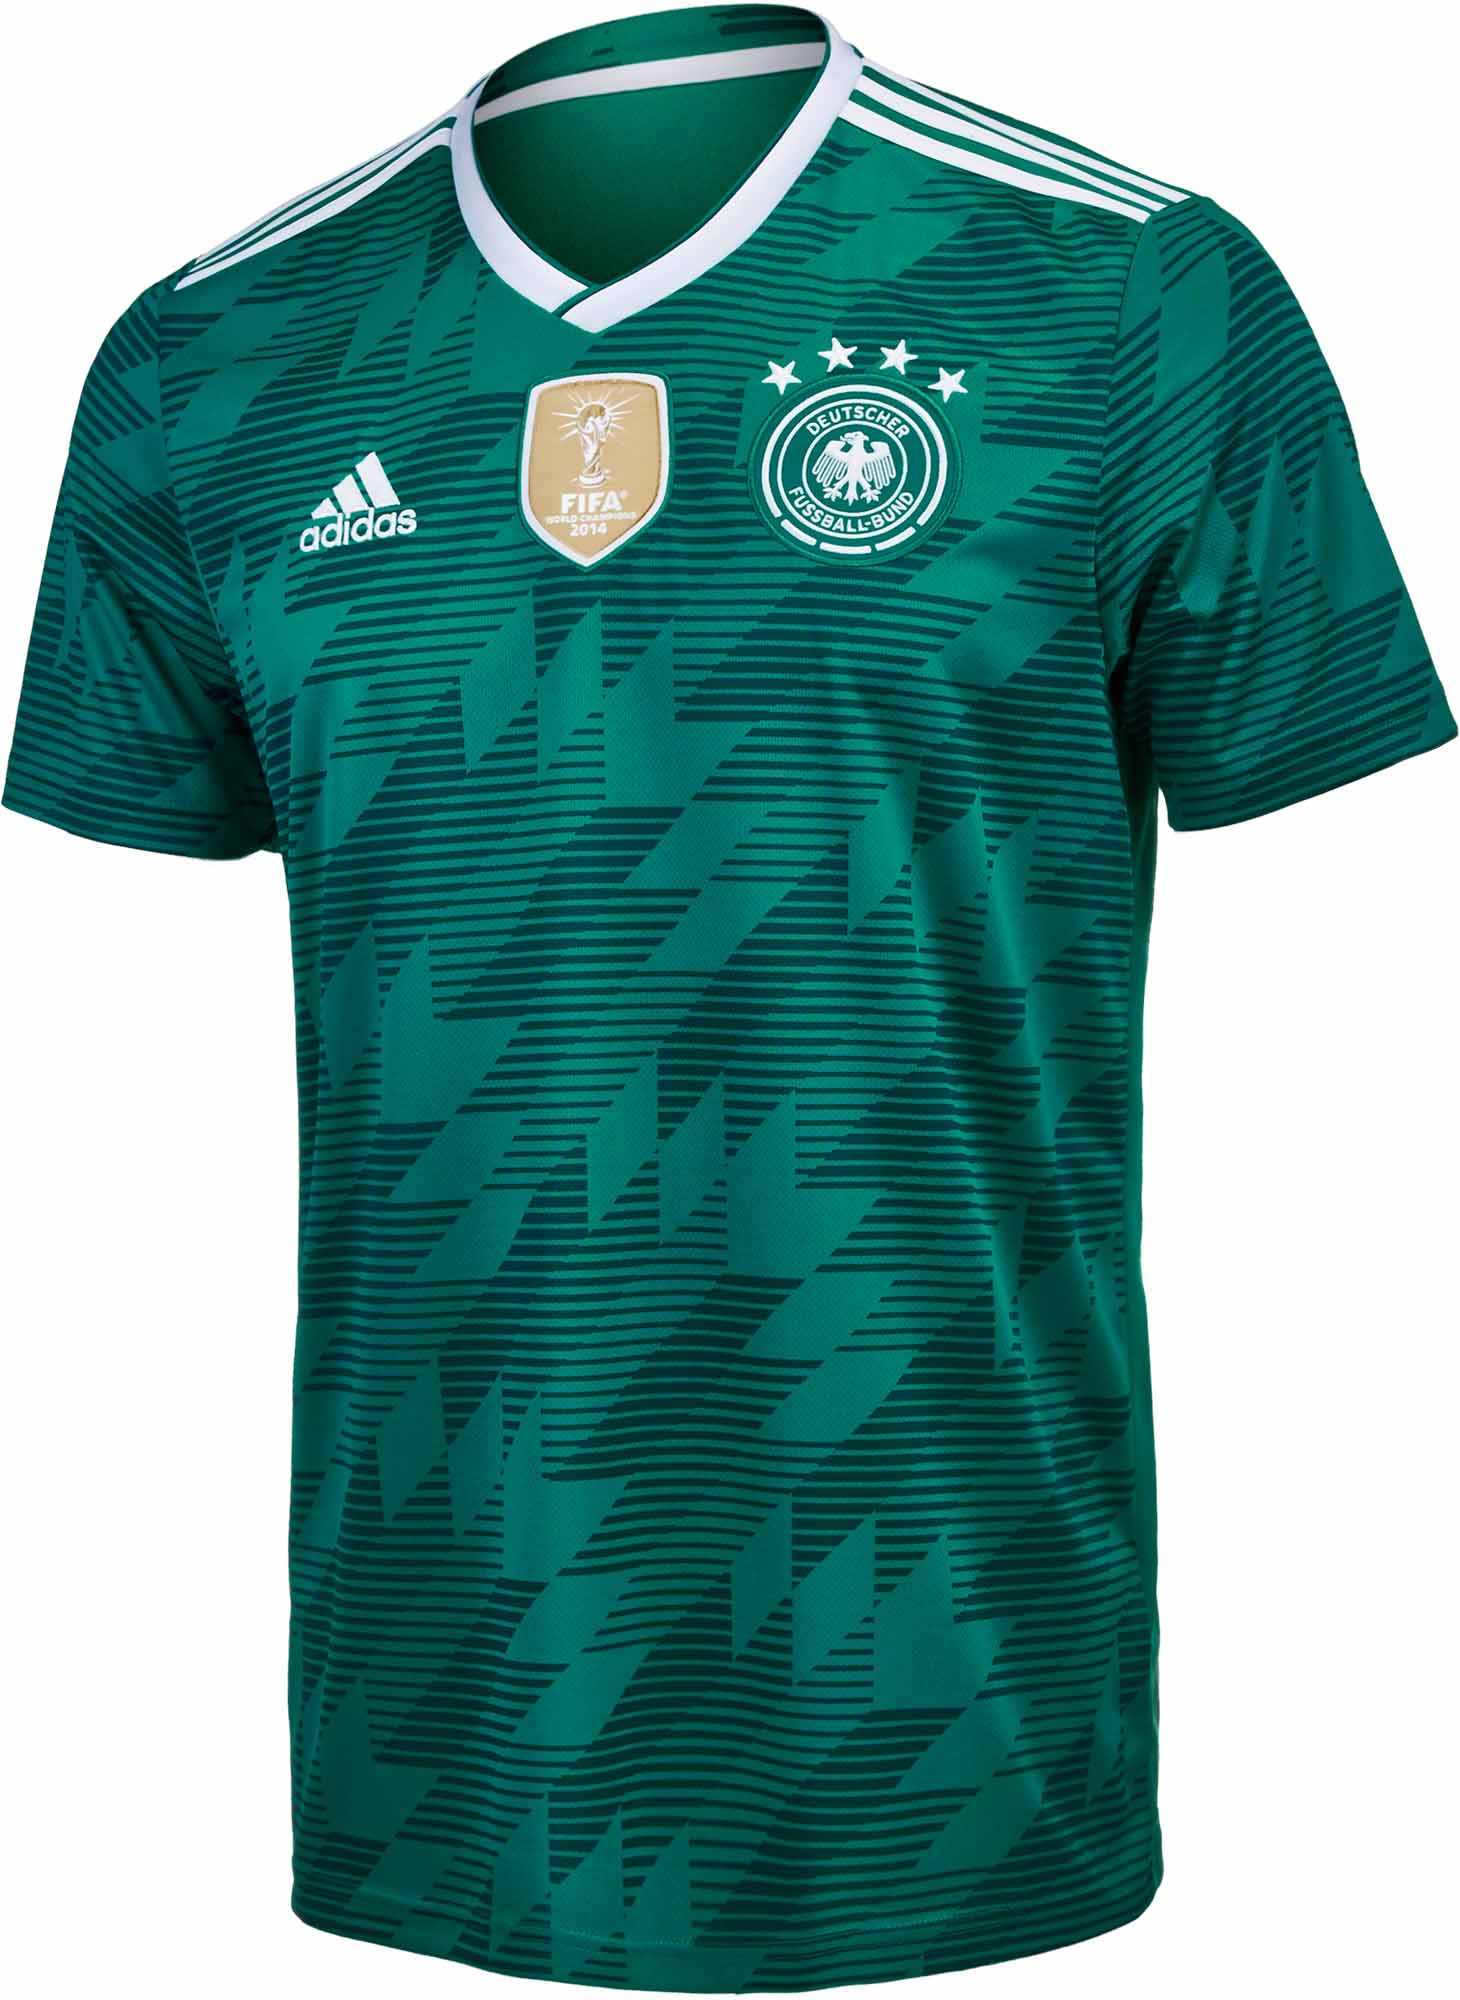 Adidas Alemania away jersey 2018 19